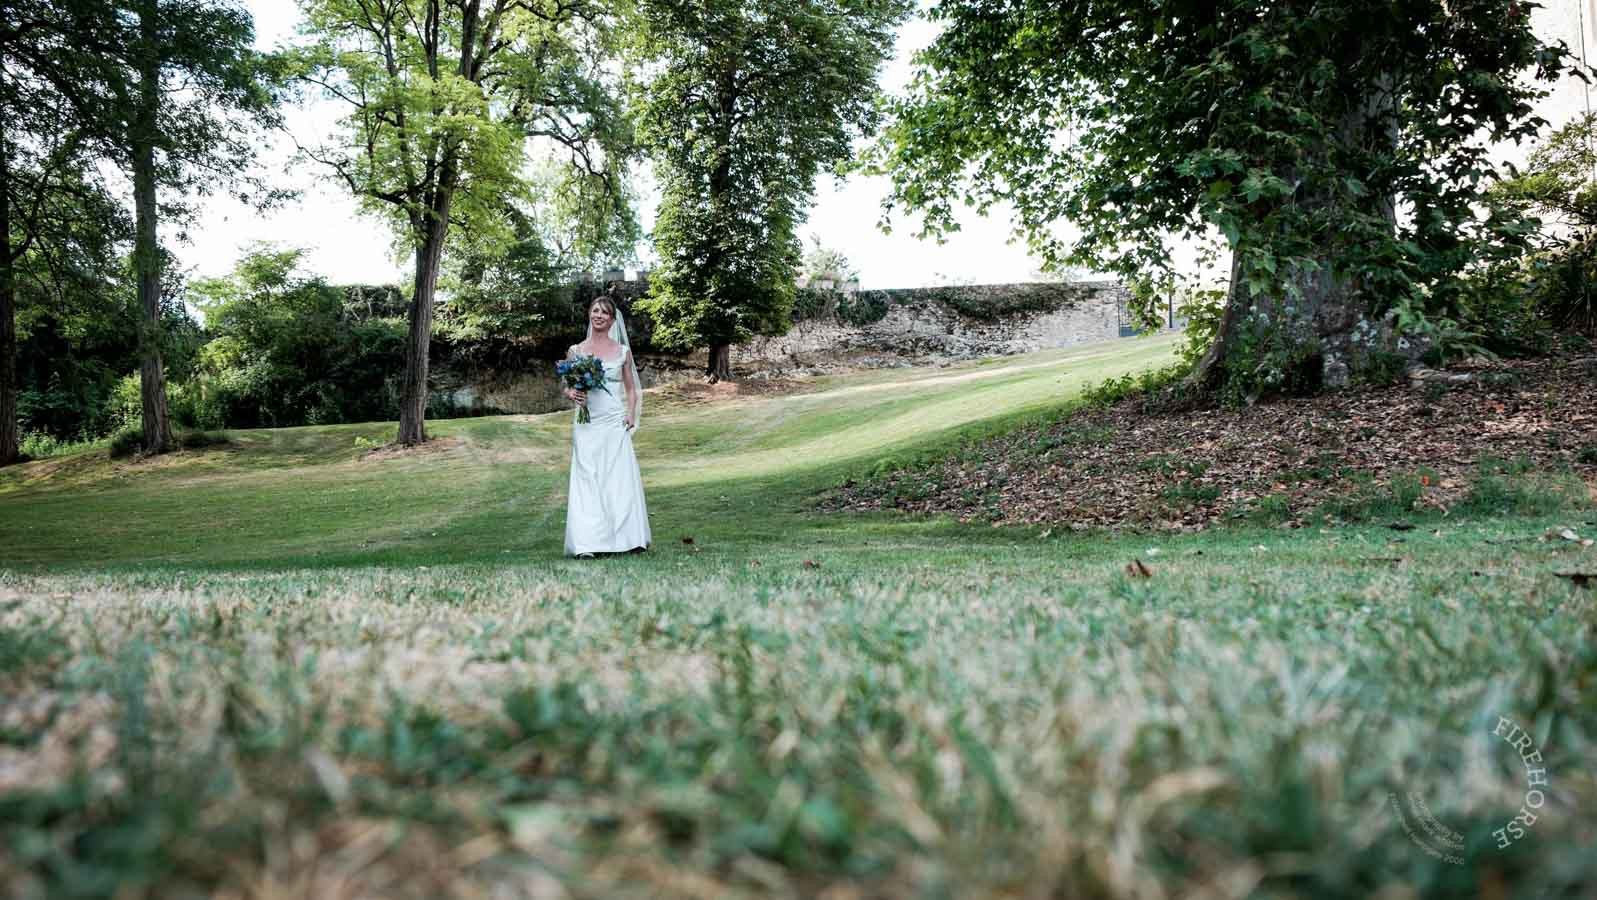 Lot-et-Garonne-Wedding-Photography-206